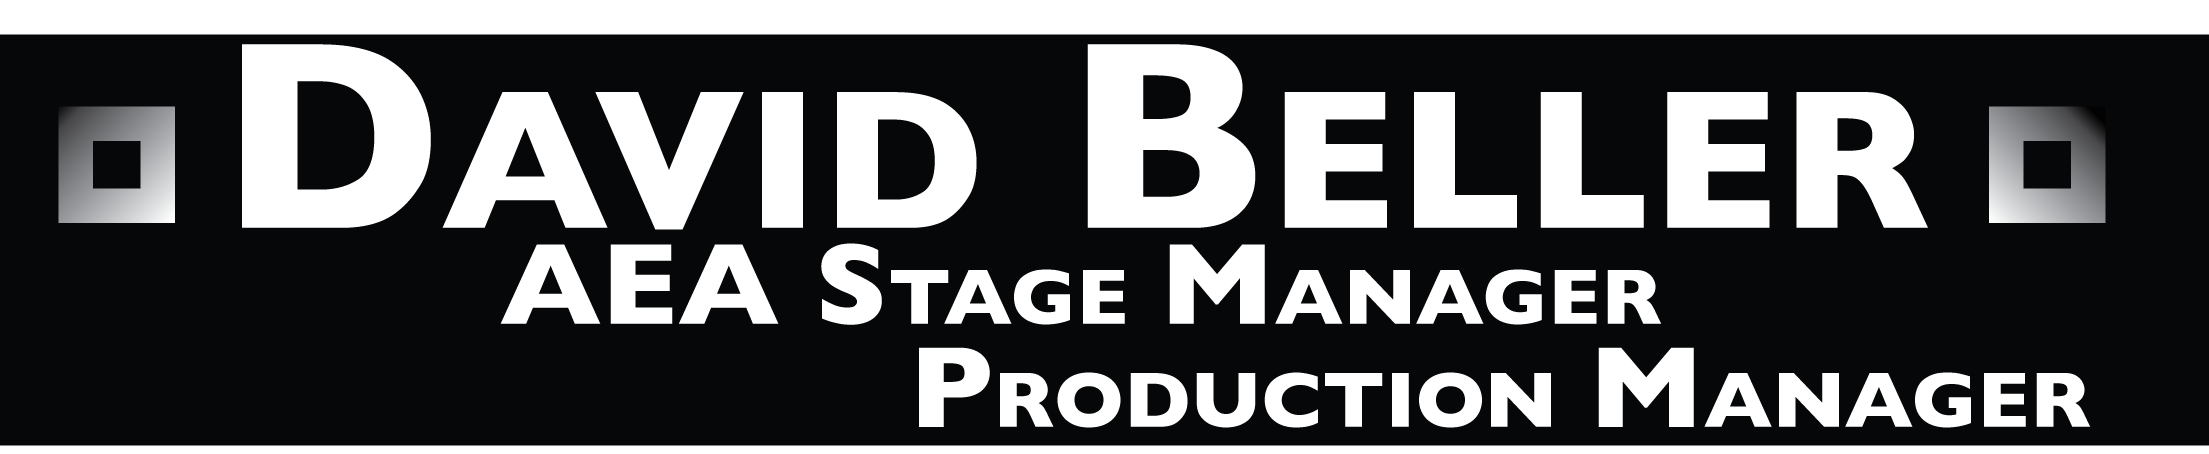 David Beller - AEA Stage Manager & Production Manager |